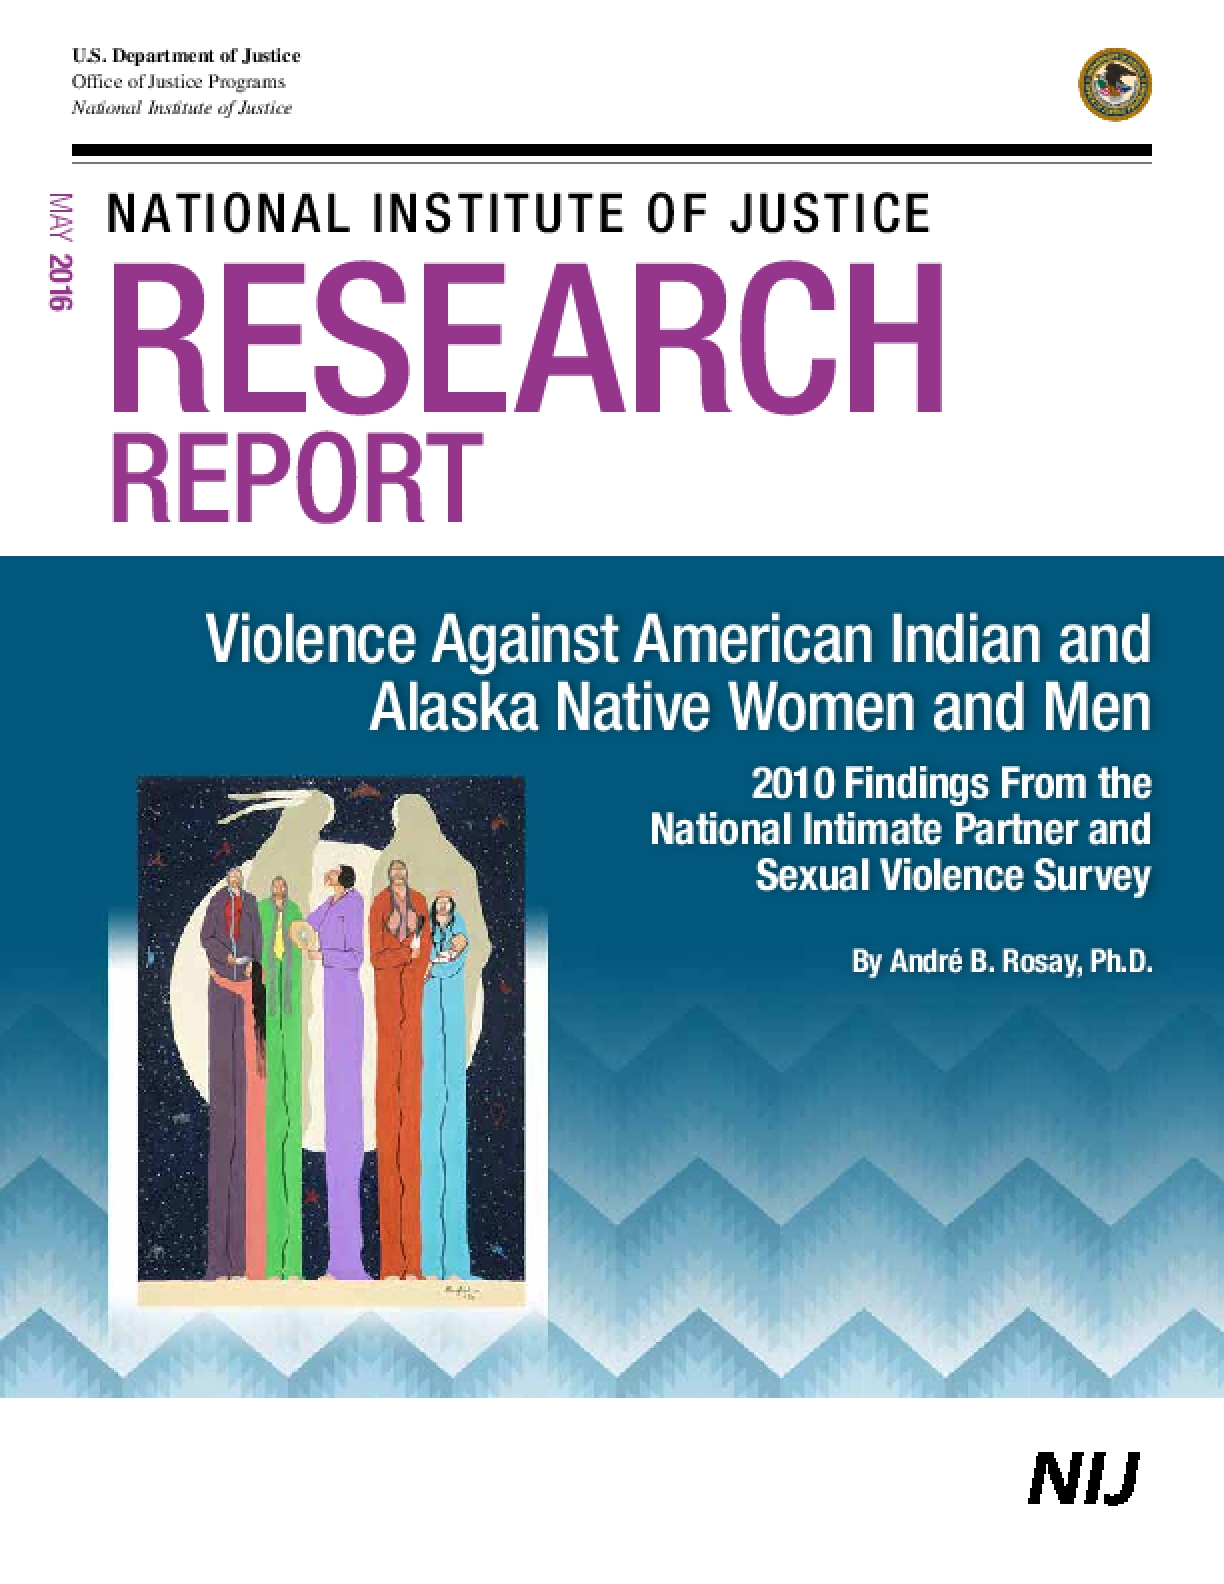 Violence Against American Indian and Alaska Native Women and Men - 2010 Findings From the National Intimate Partner and Sexual Violence Survey